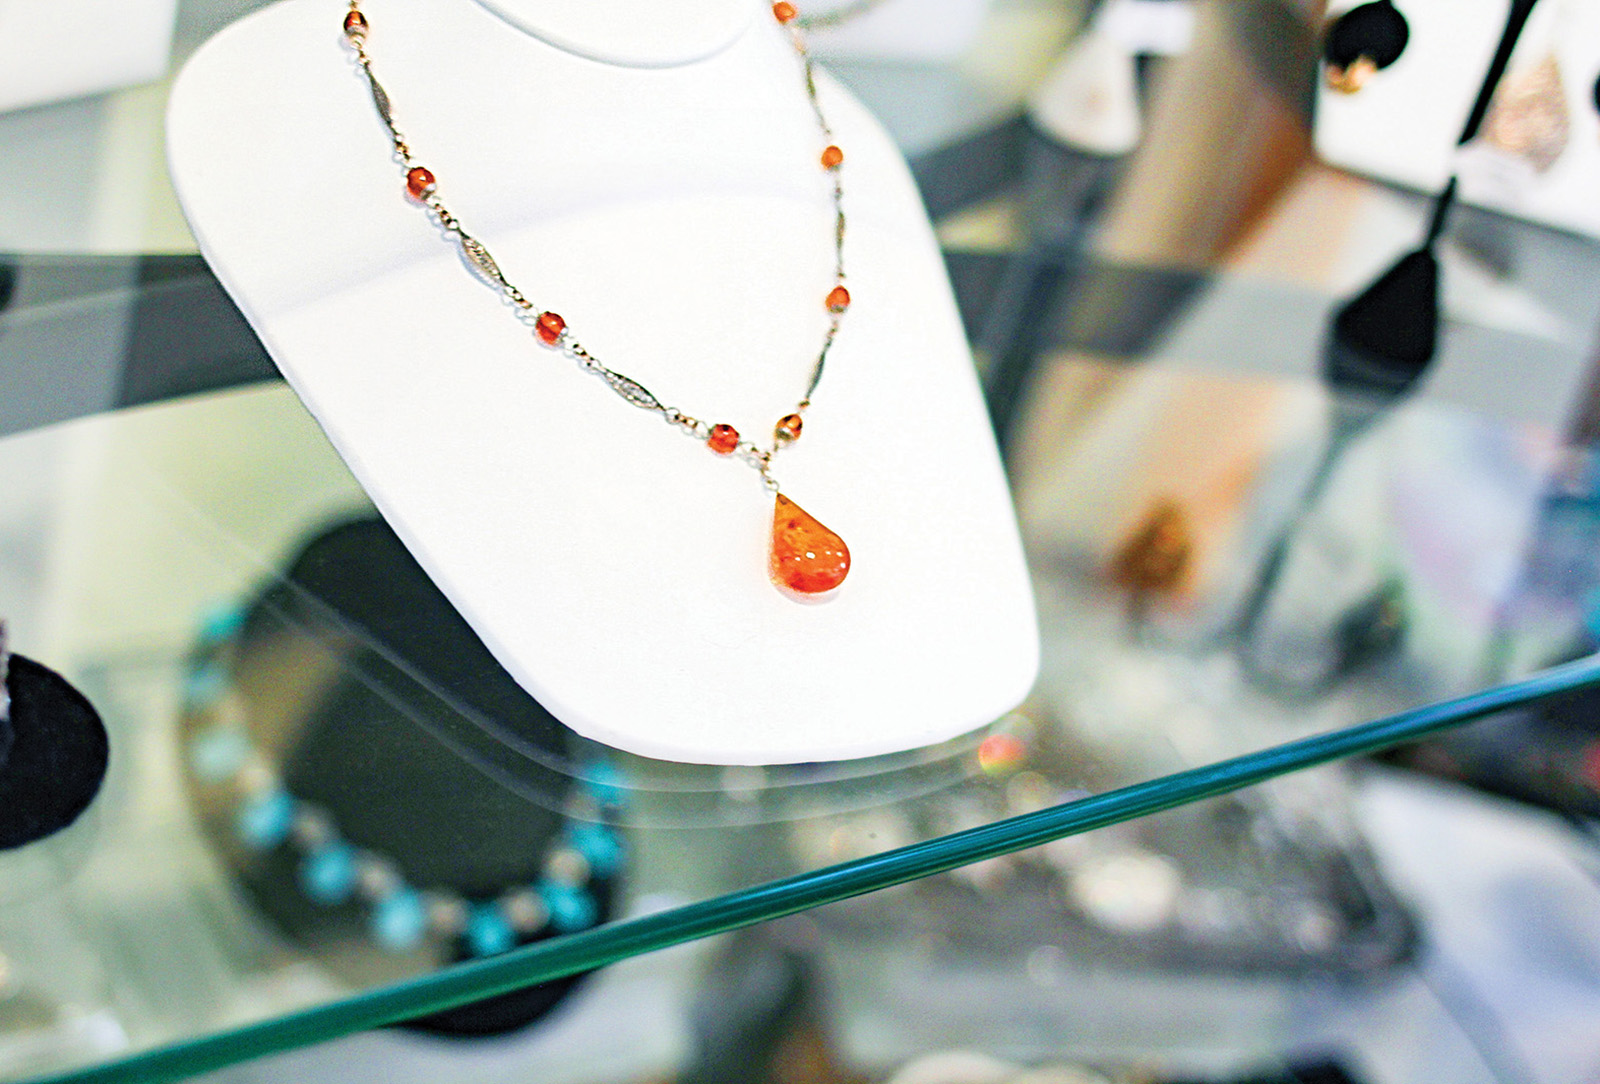 highlands nc shopping peak experience necklace